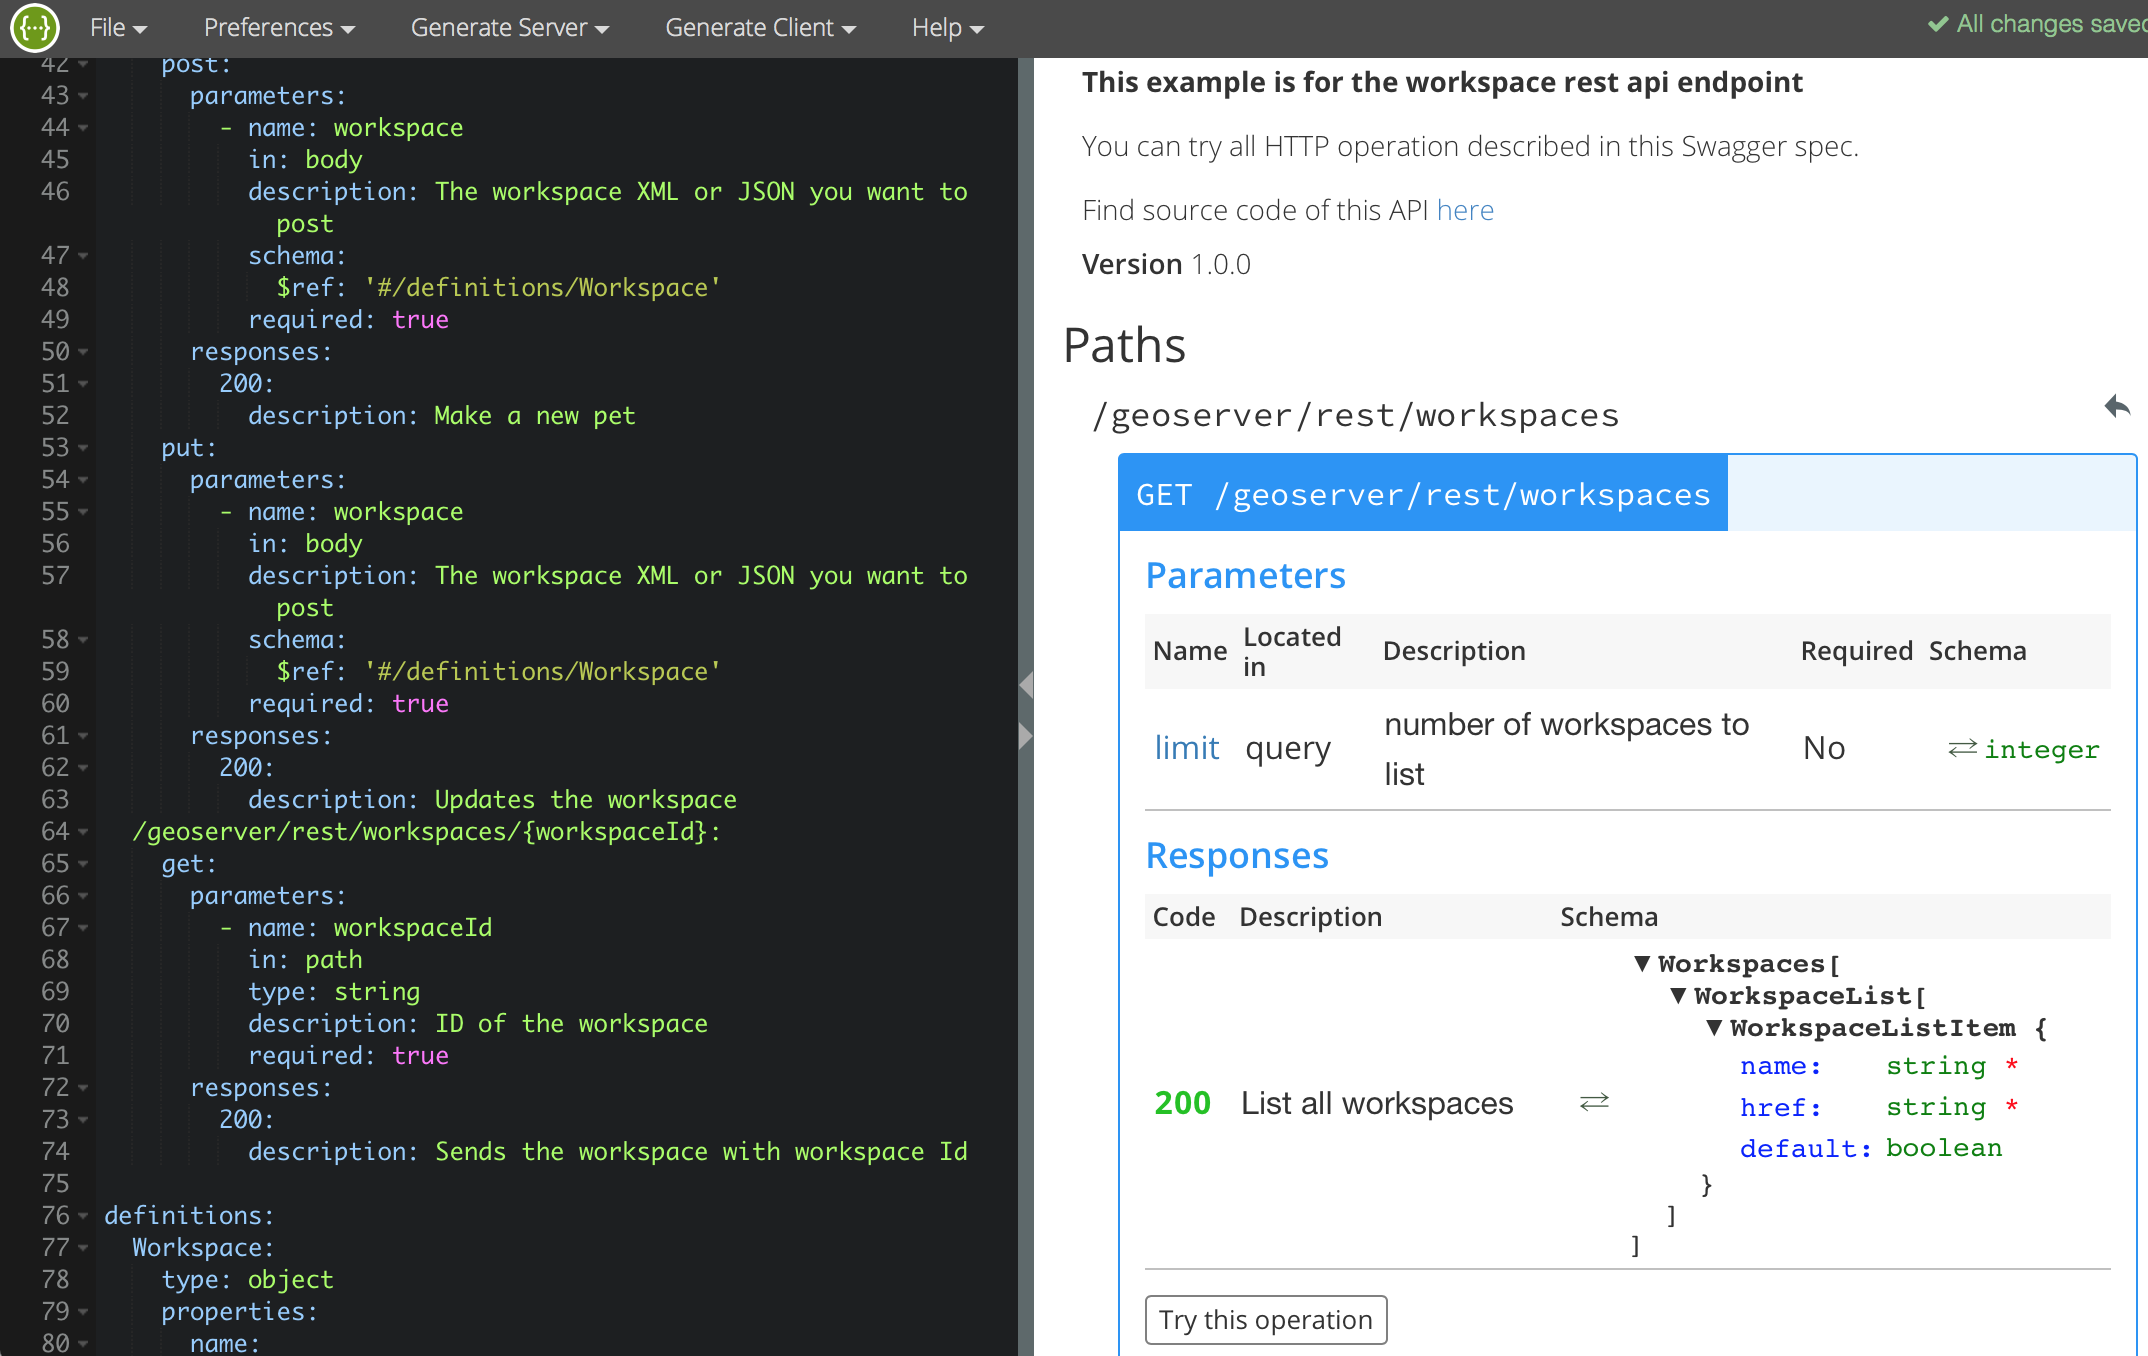 swagger editor example for workspace